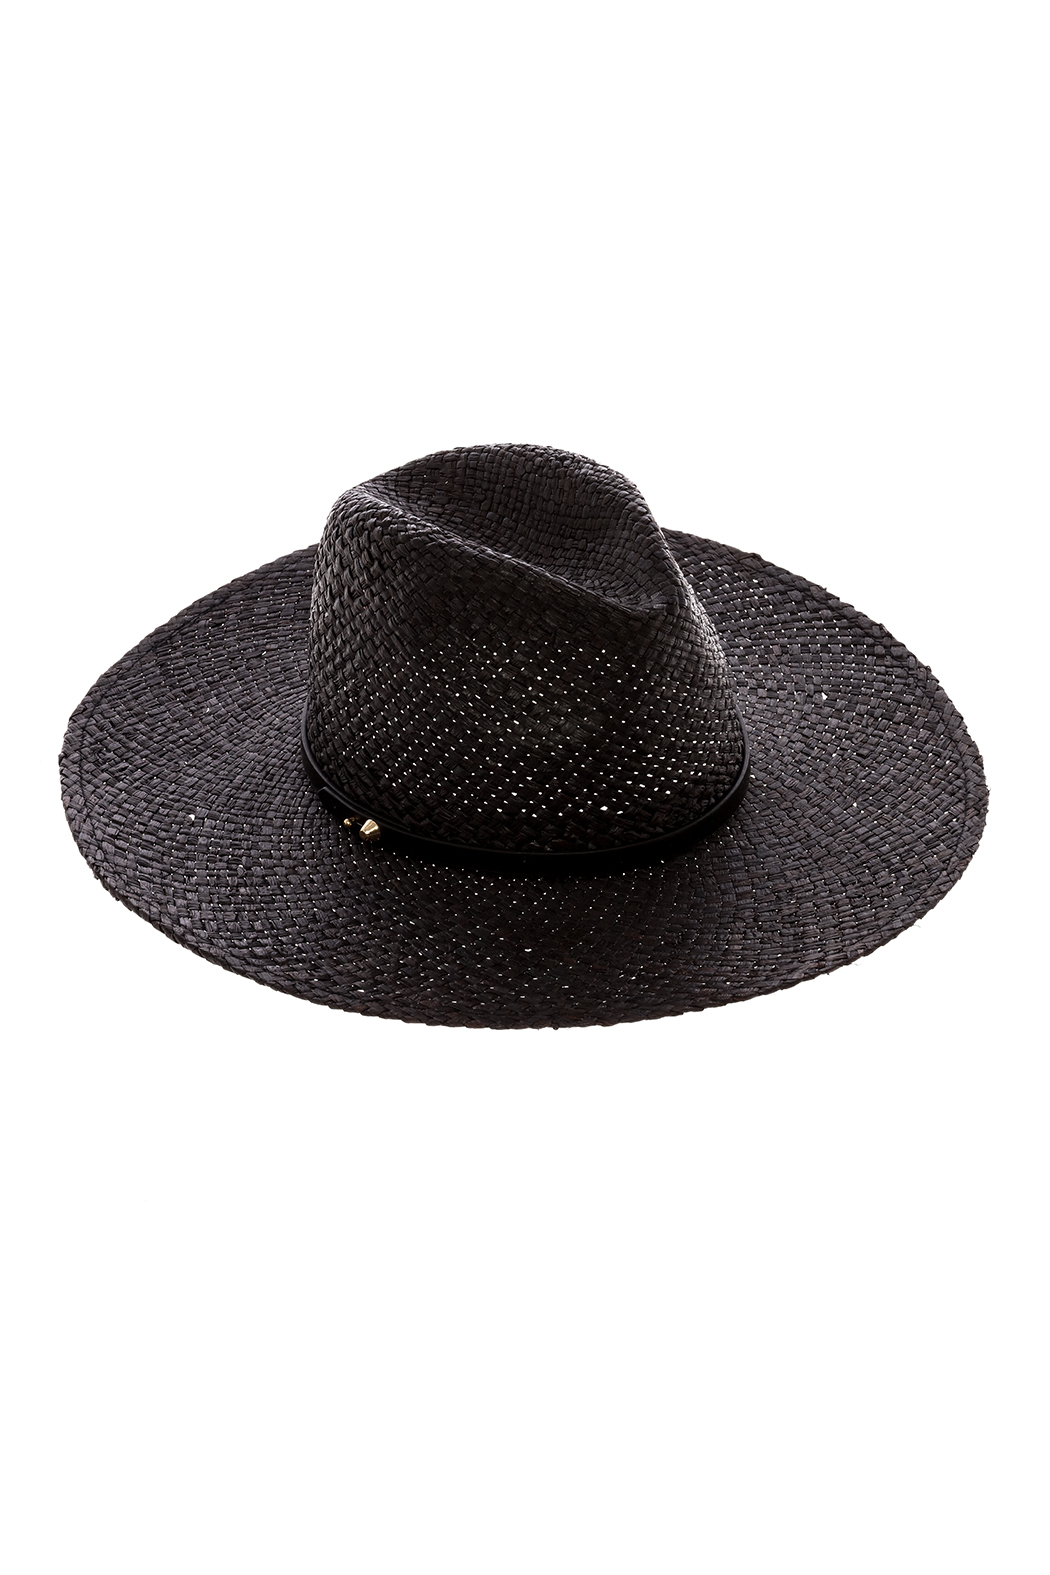 Ace of Something Black Straw Hat - Front Cropped Image